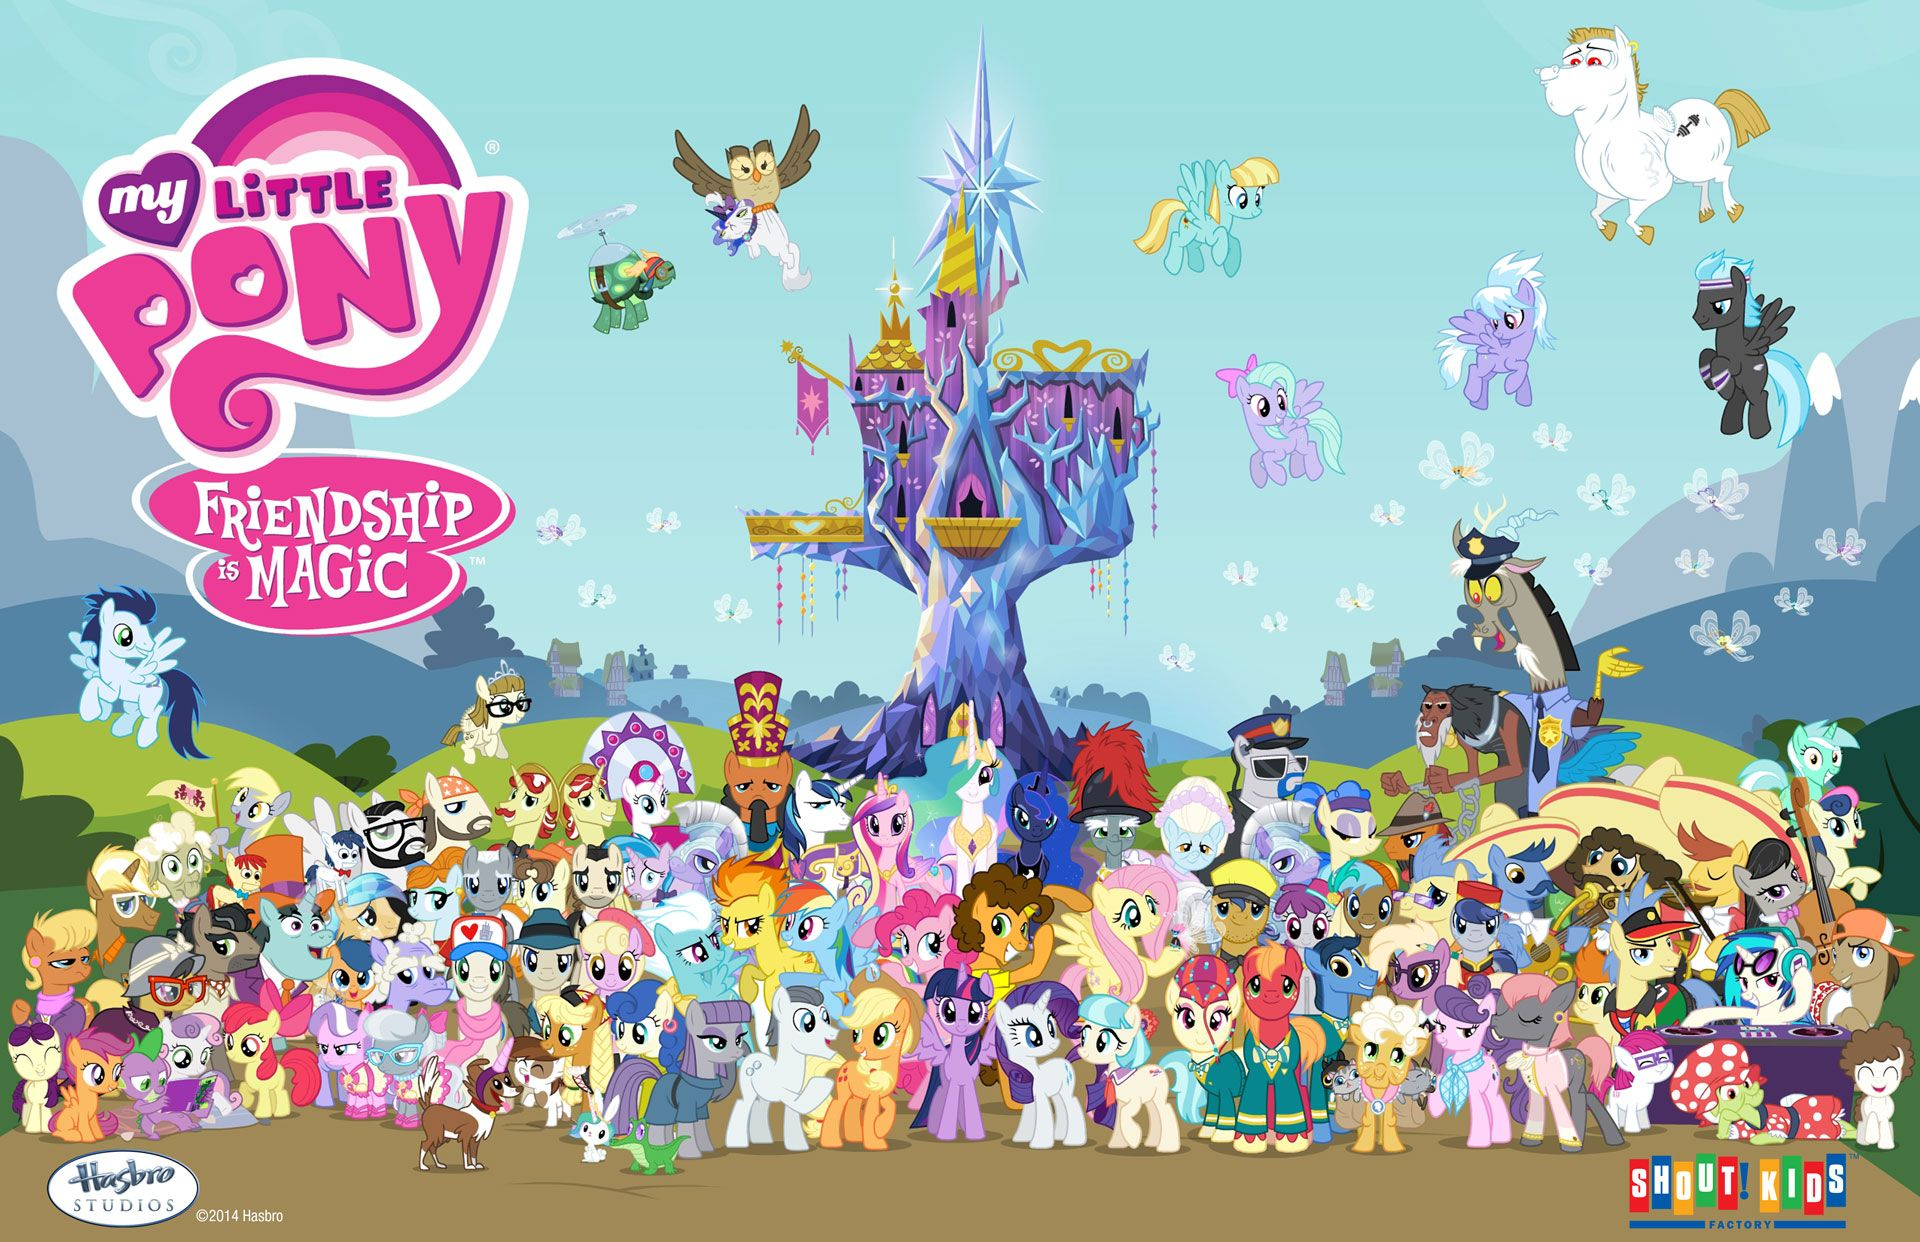 I Got The Feelin James Brown In The 60s My Little Pony